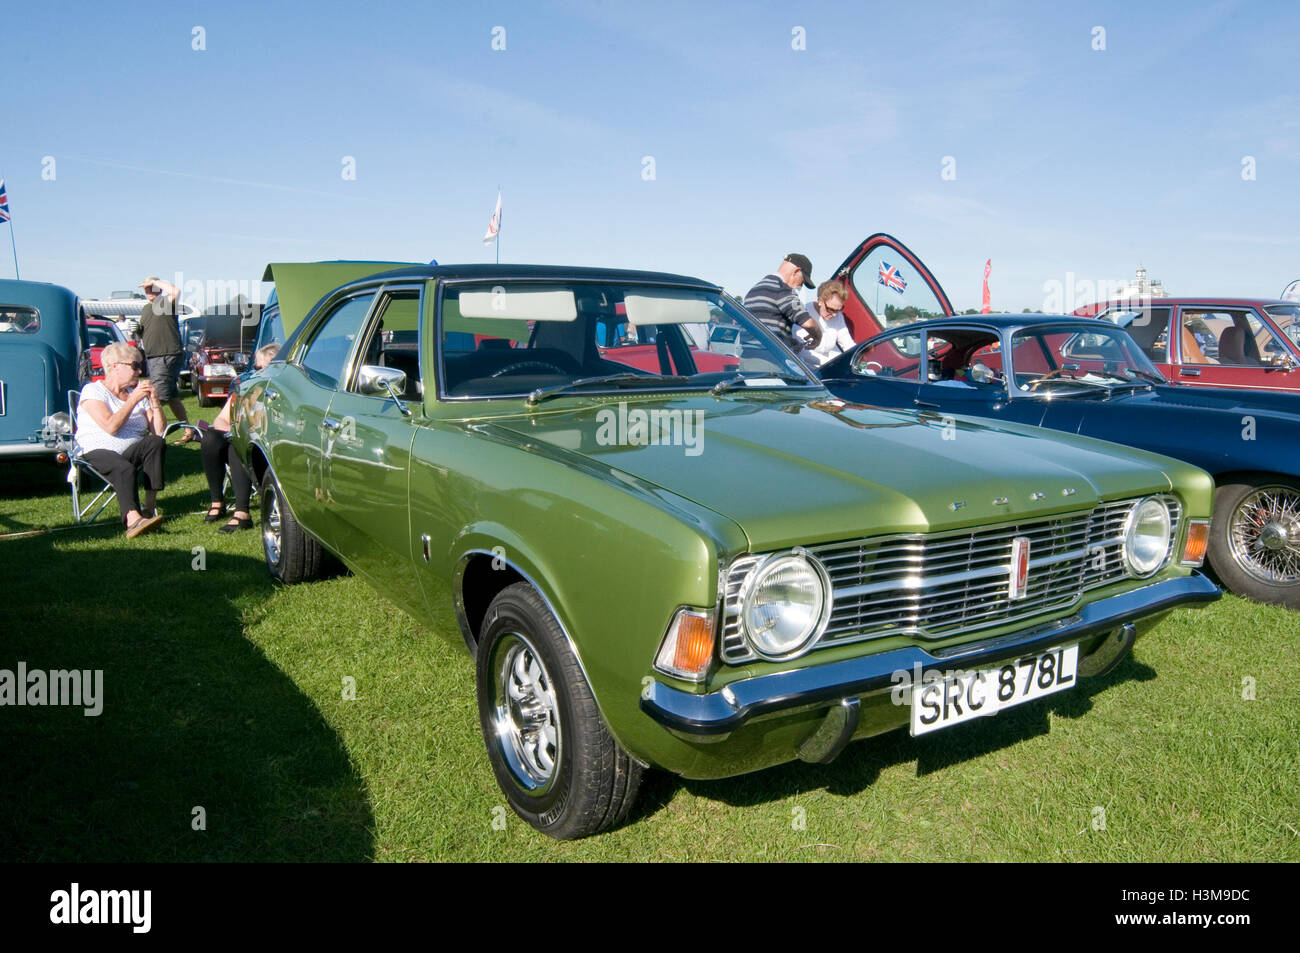 old ford cortina stock photos & old ford cortina stock images - alamy